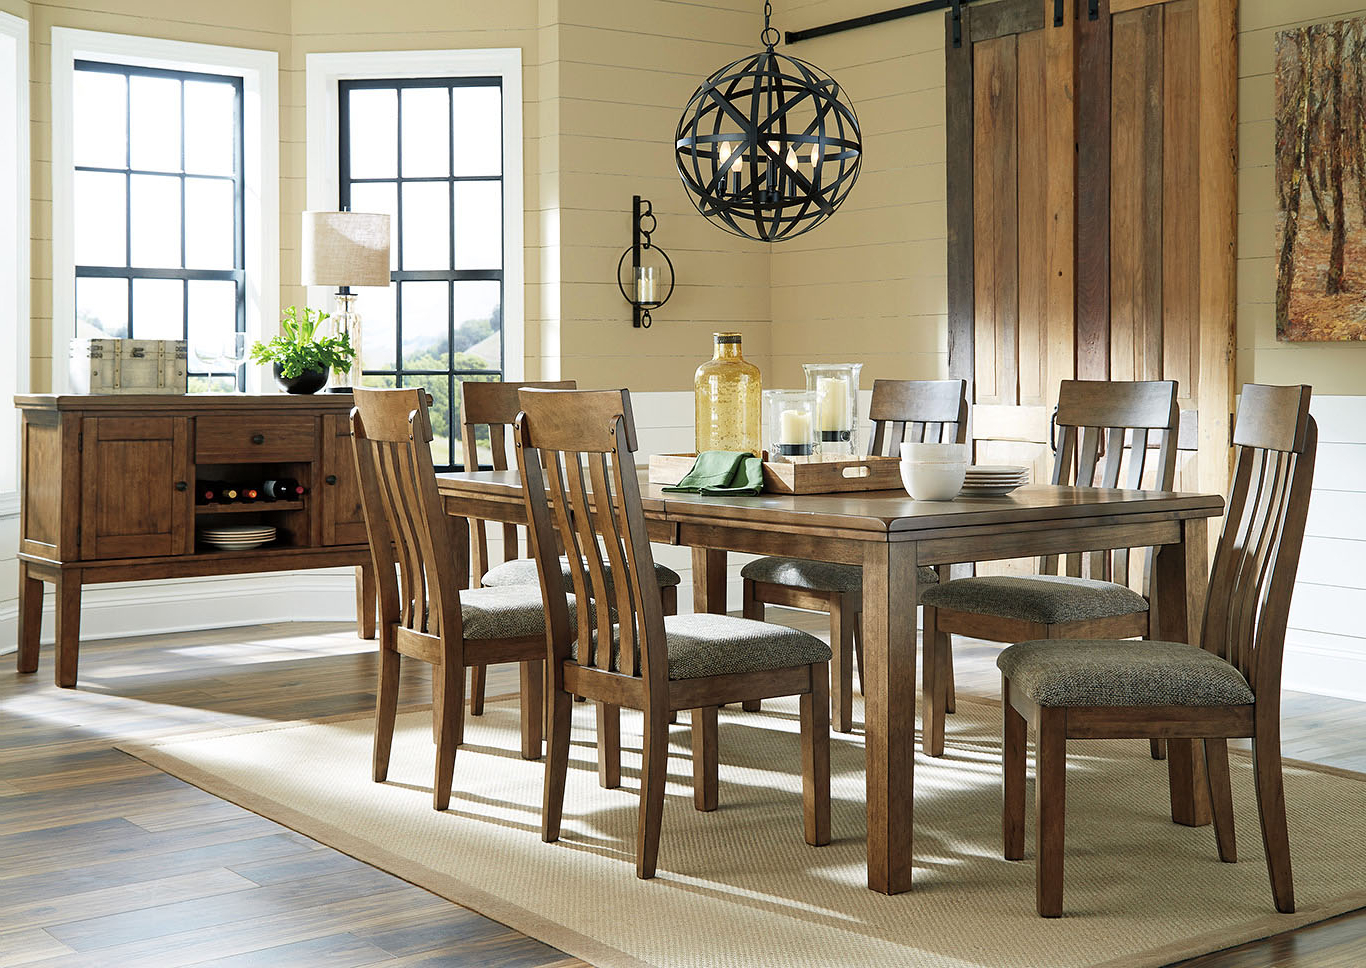 Fashionable Southside Furniture Flaybern Light Brown Extension Dining Within Transitional 6 Seating Casual Dining Tables (Gallery 23 of 30)